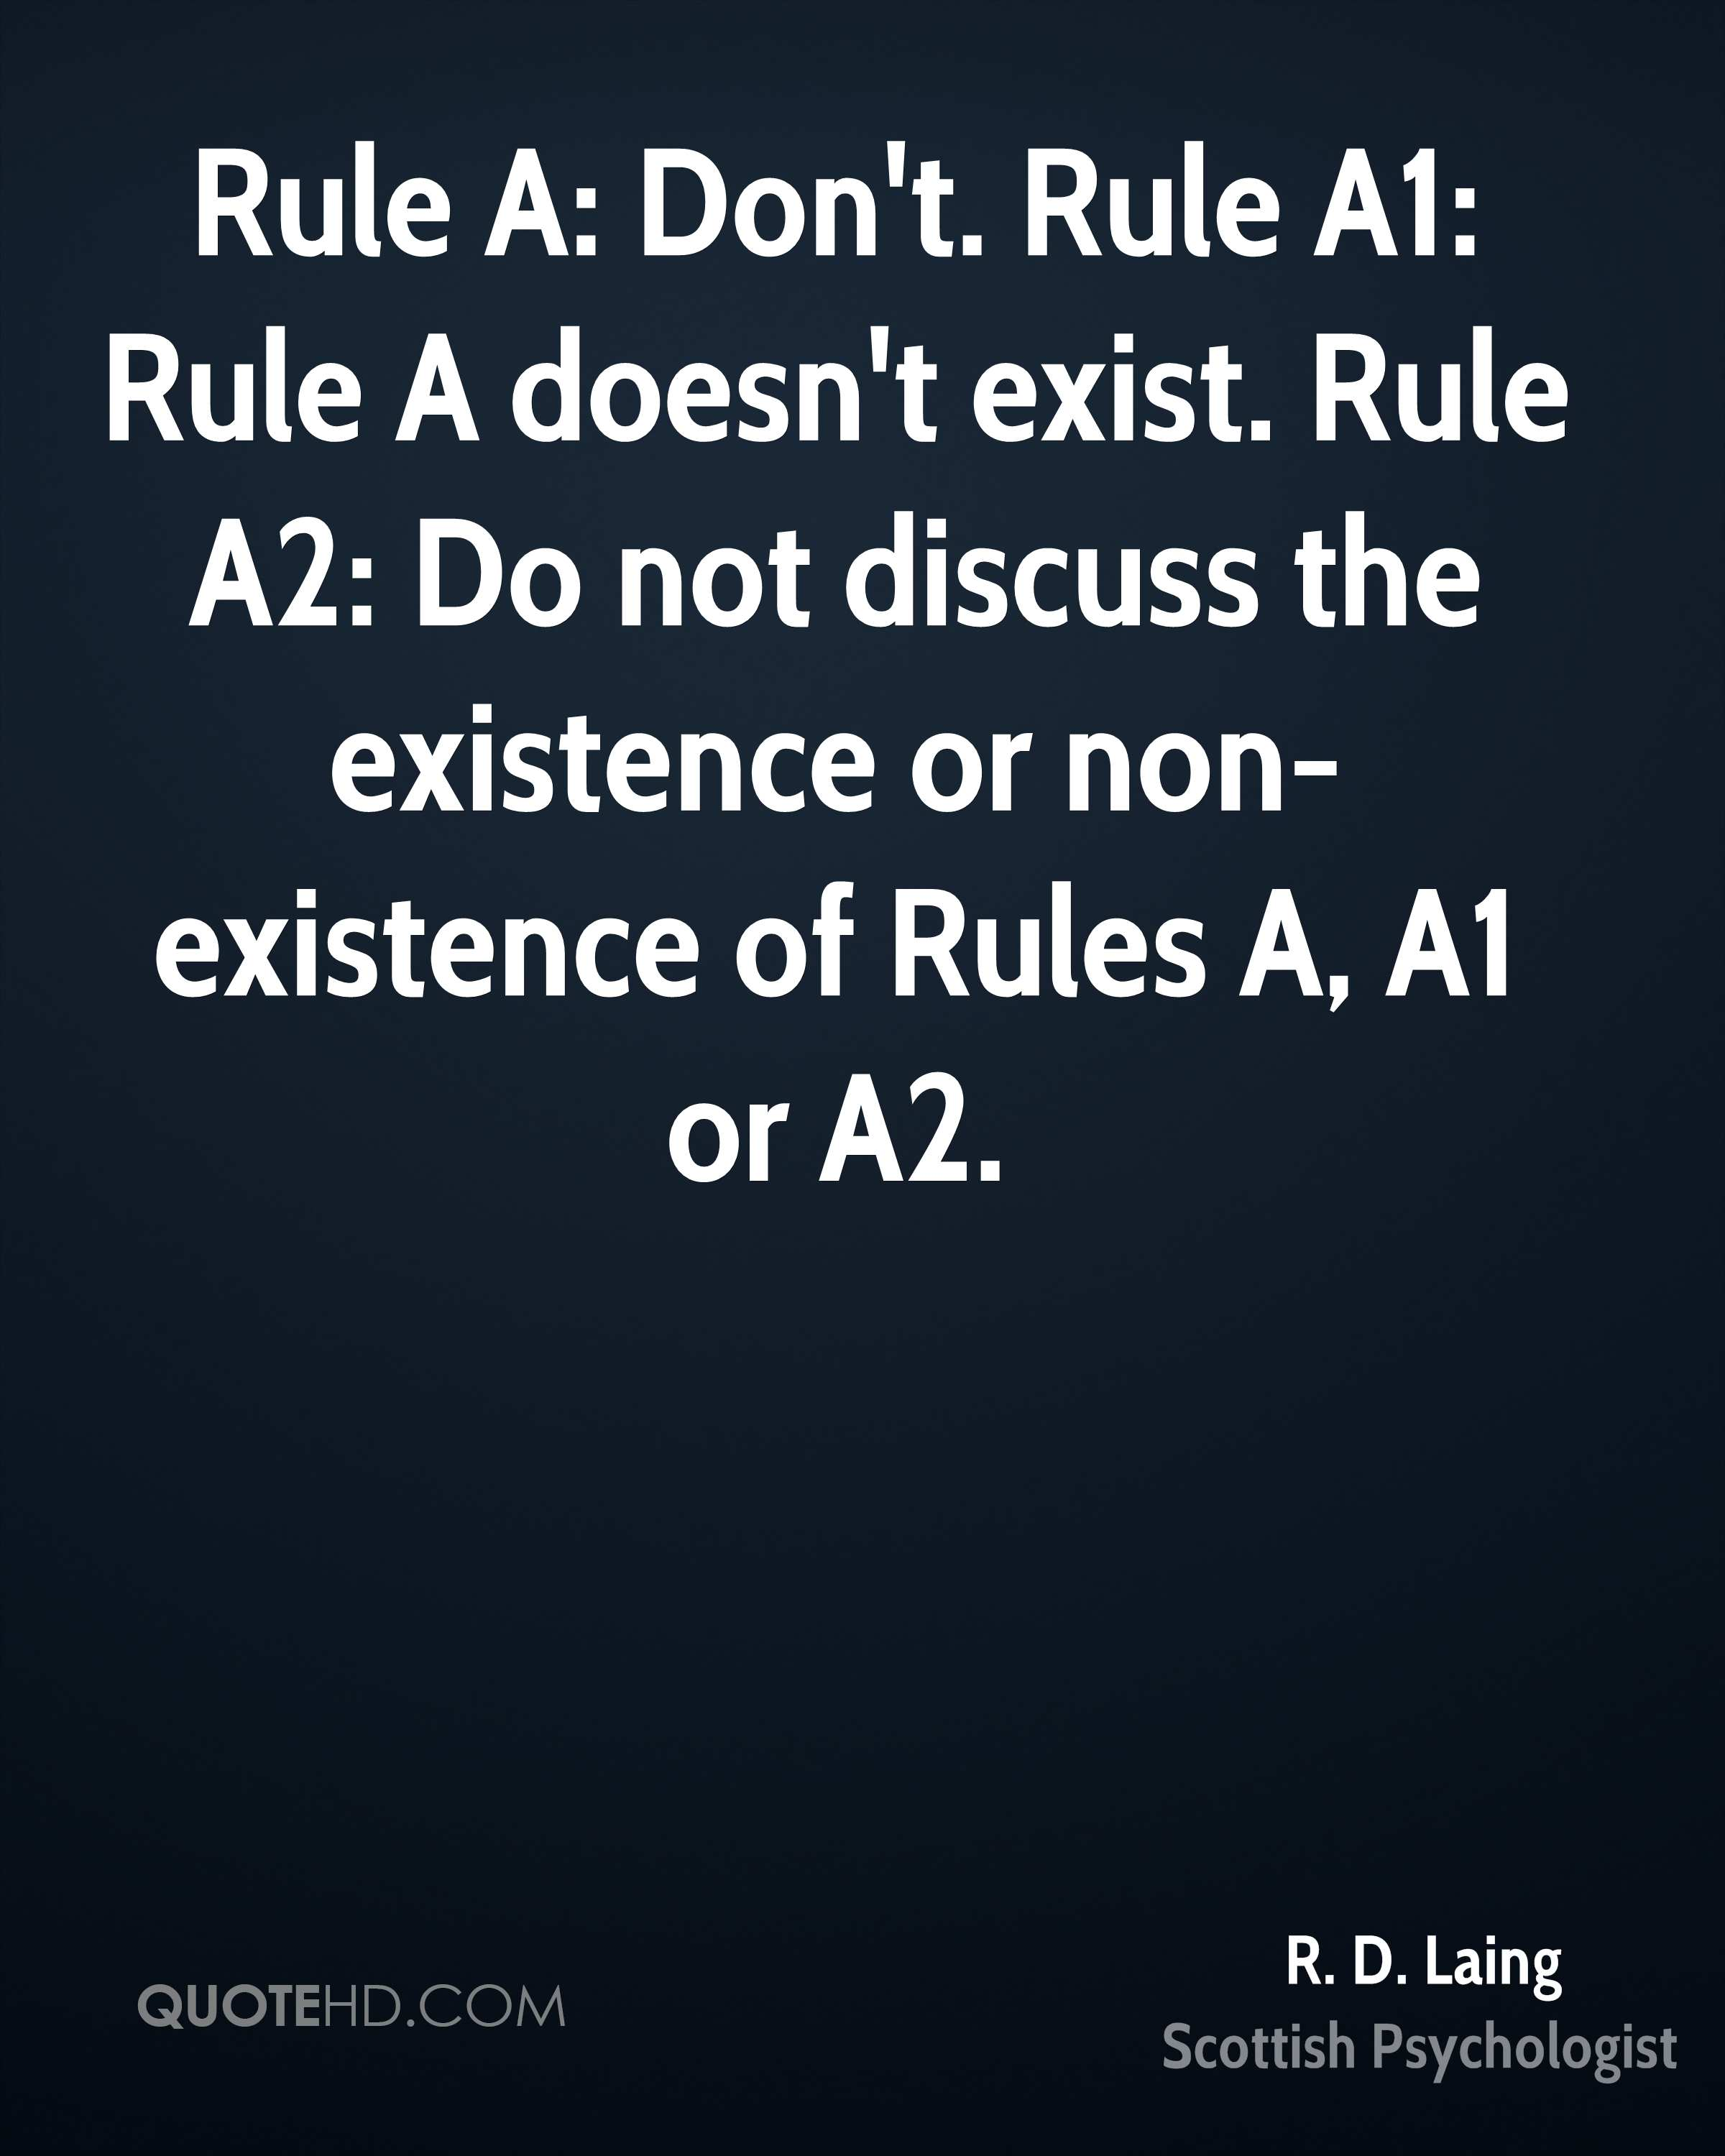 Rule A: Don't. Rule A1: Rule A doesn't exist. Rule A2: Do not discuss the existence or non-existence of Rules A, A1 or A2.